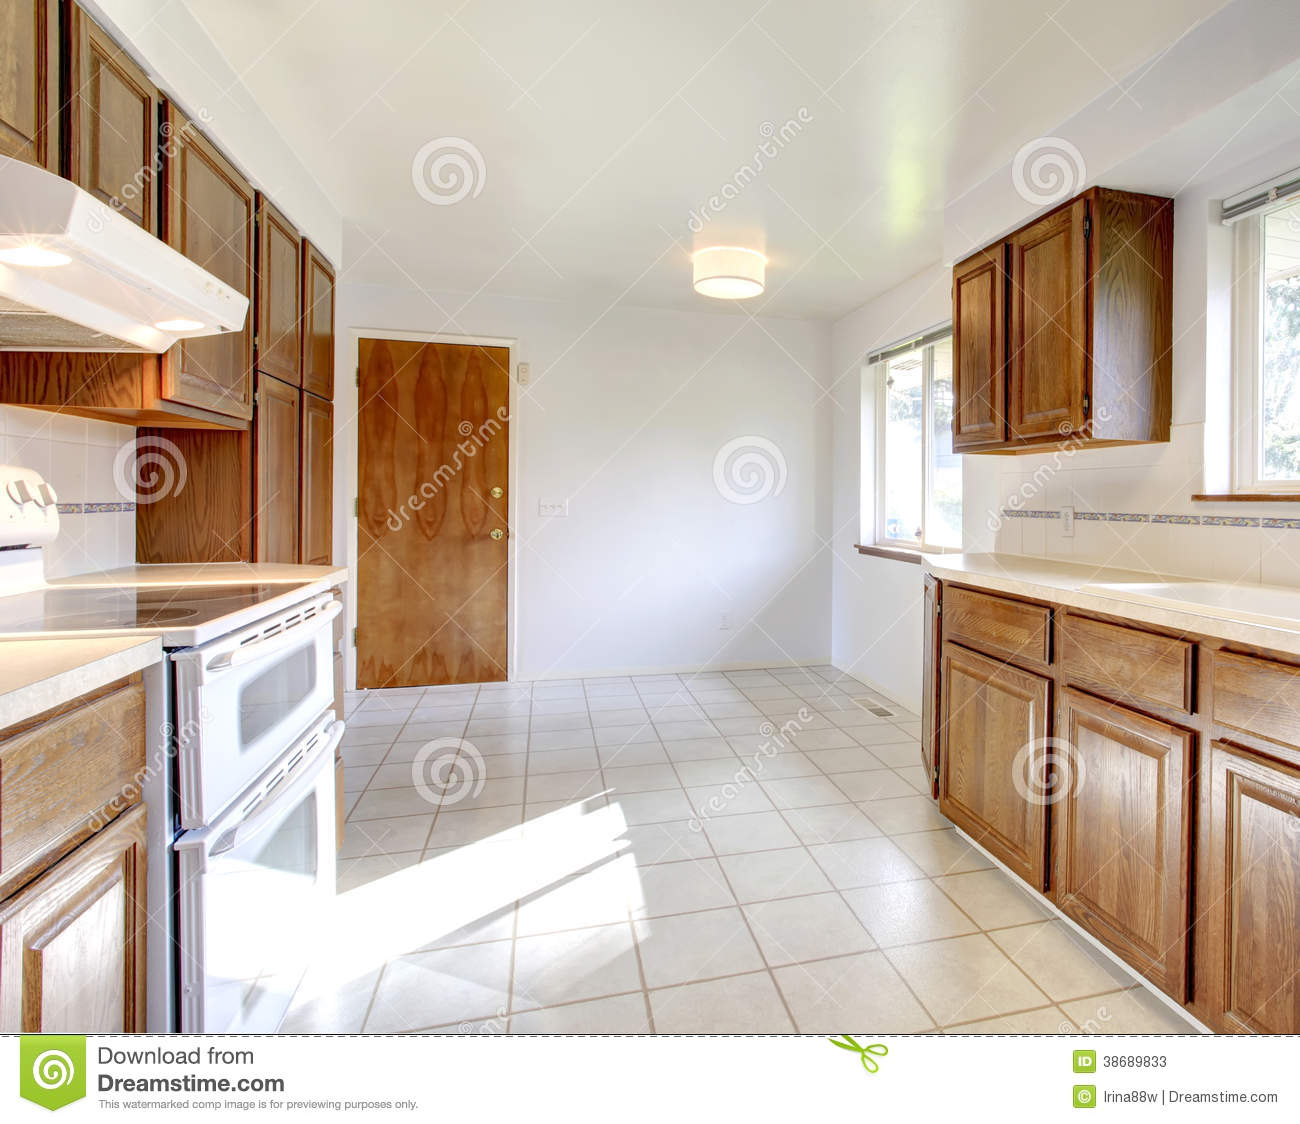 Brown To White Kitchen Cabinets: White Kitchen Room With Brown Cabinets Stock Image